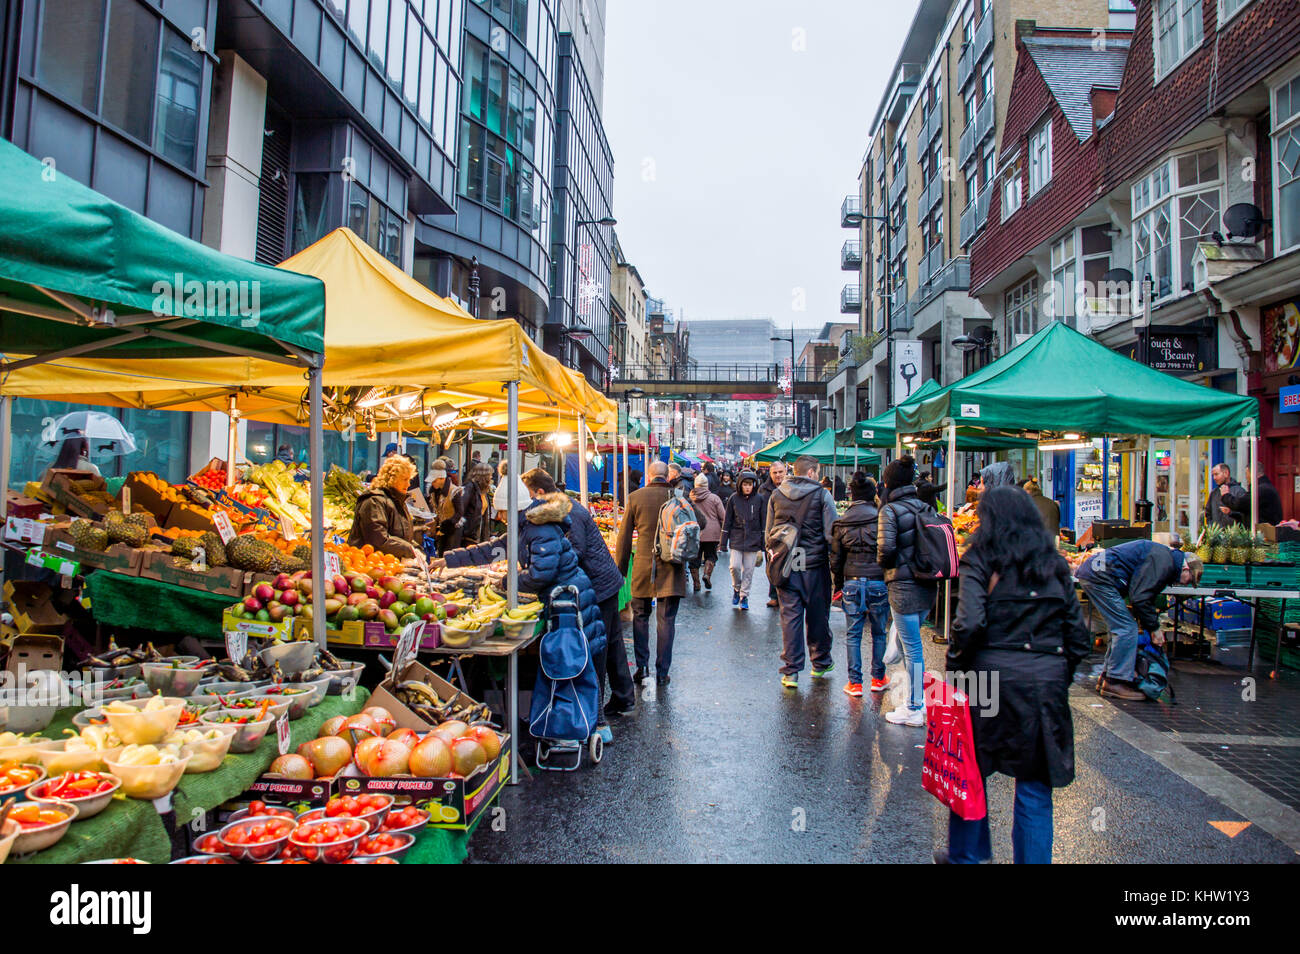 Croydon Surrey street market on a rainy day with sellers selling fruits and vegetables - Stock Image